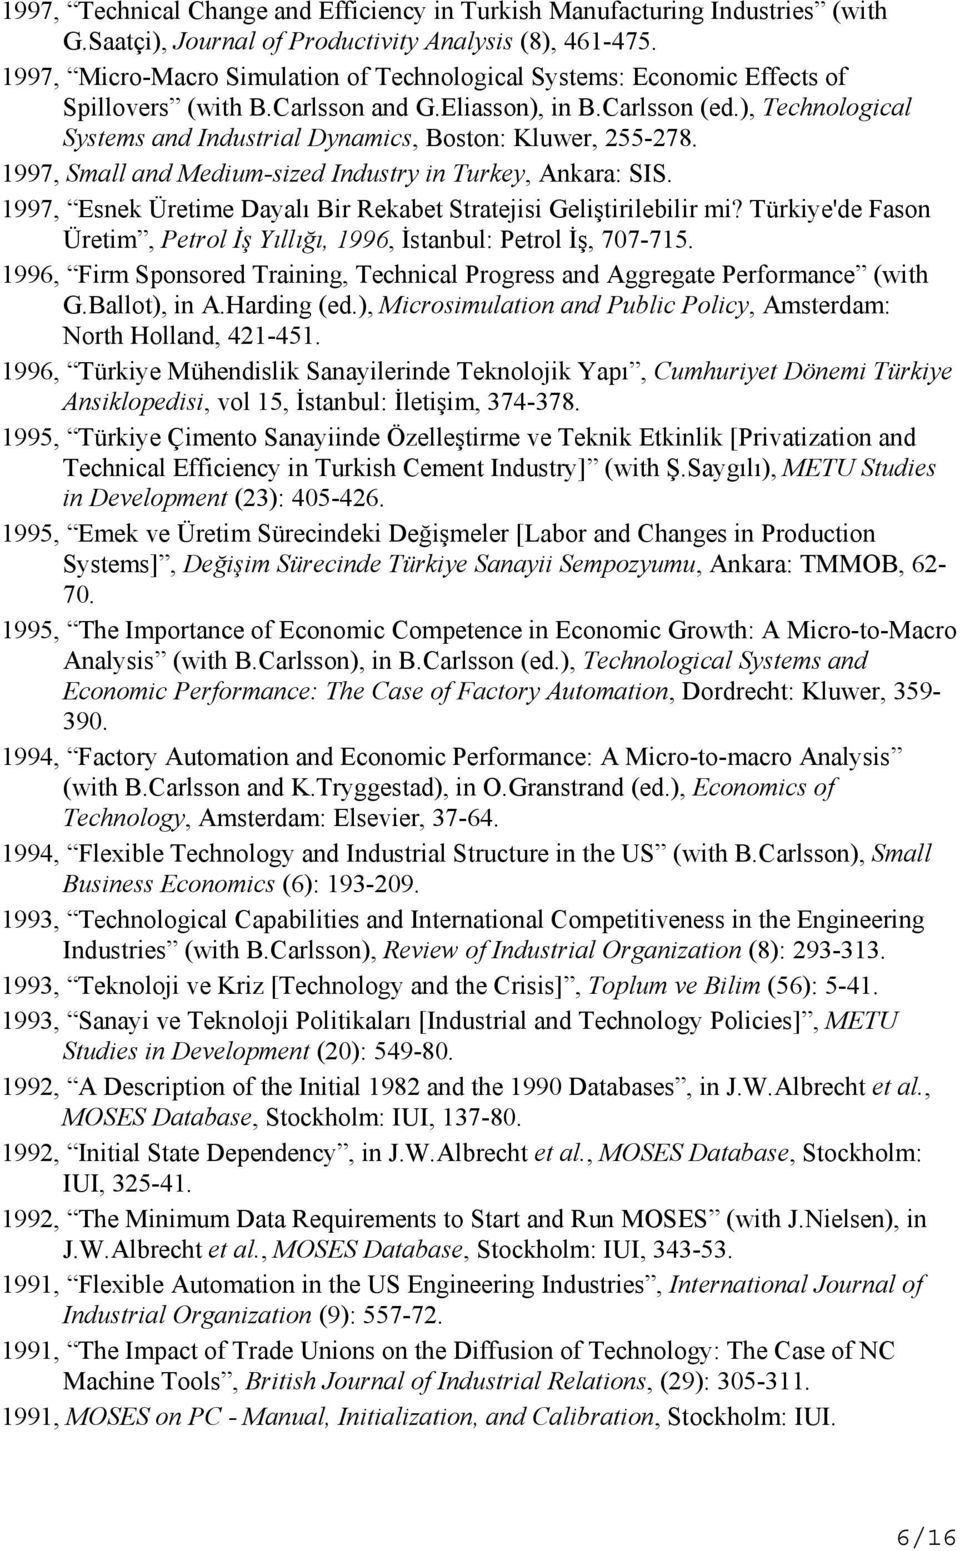 ), Technological Systems and Industrial Dynamics, Boston: Kluwer, 255-278. 1997, Small and Medium-sized Industry in Turkey, Ankara: SIS.